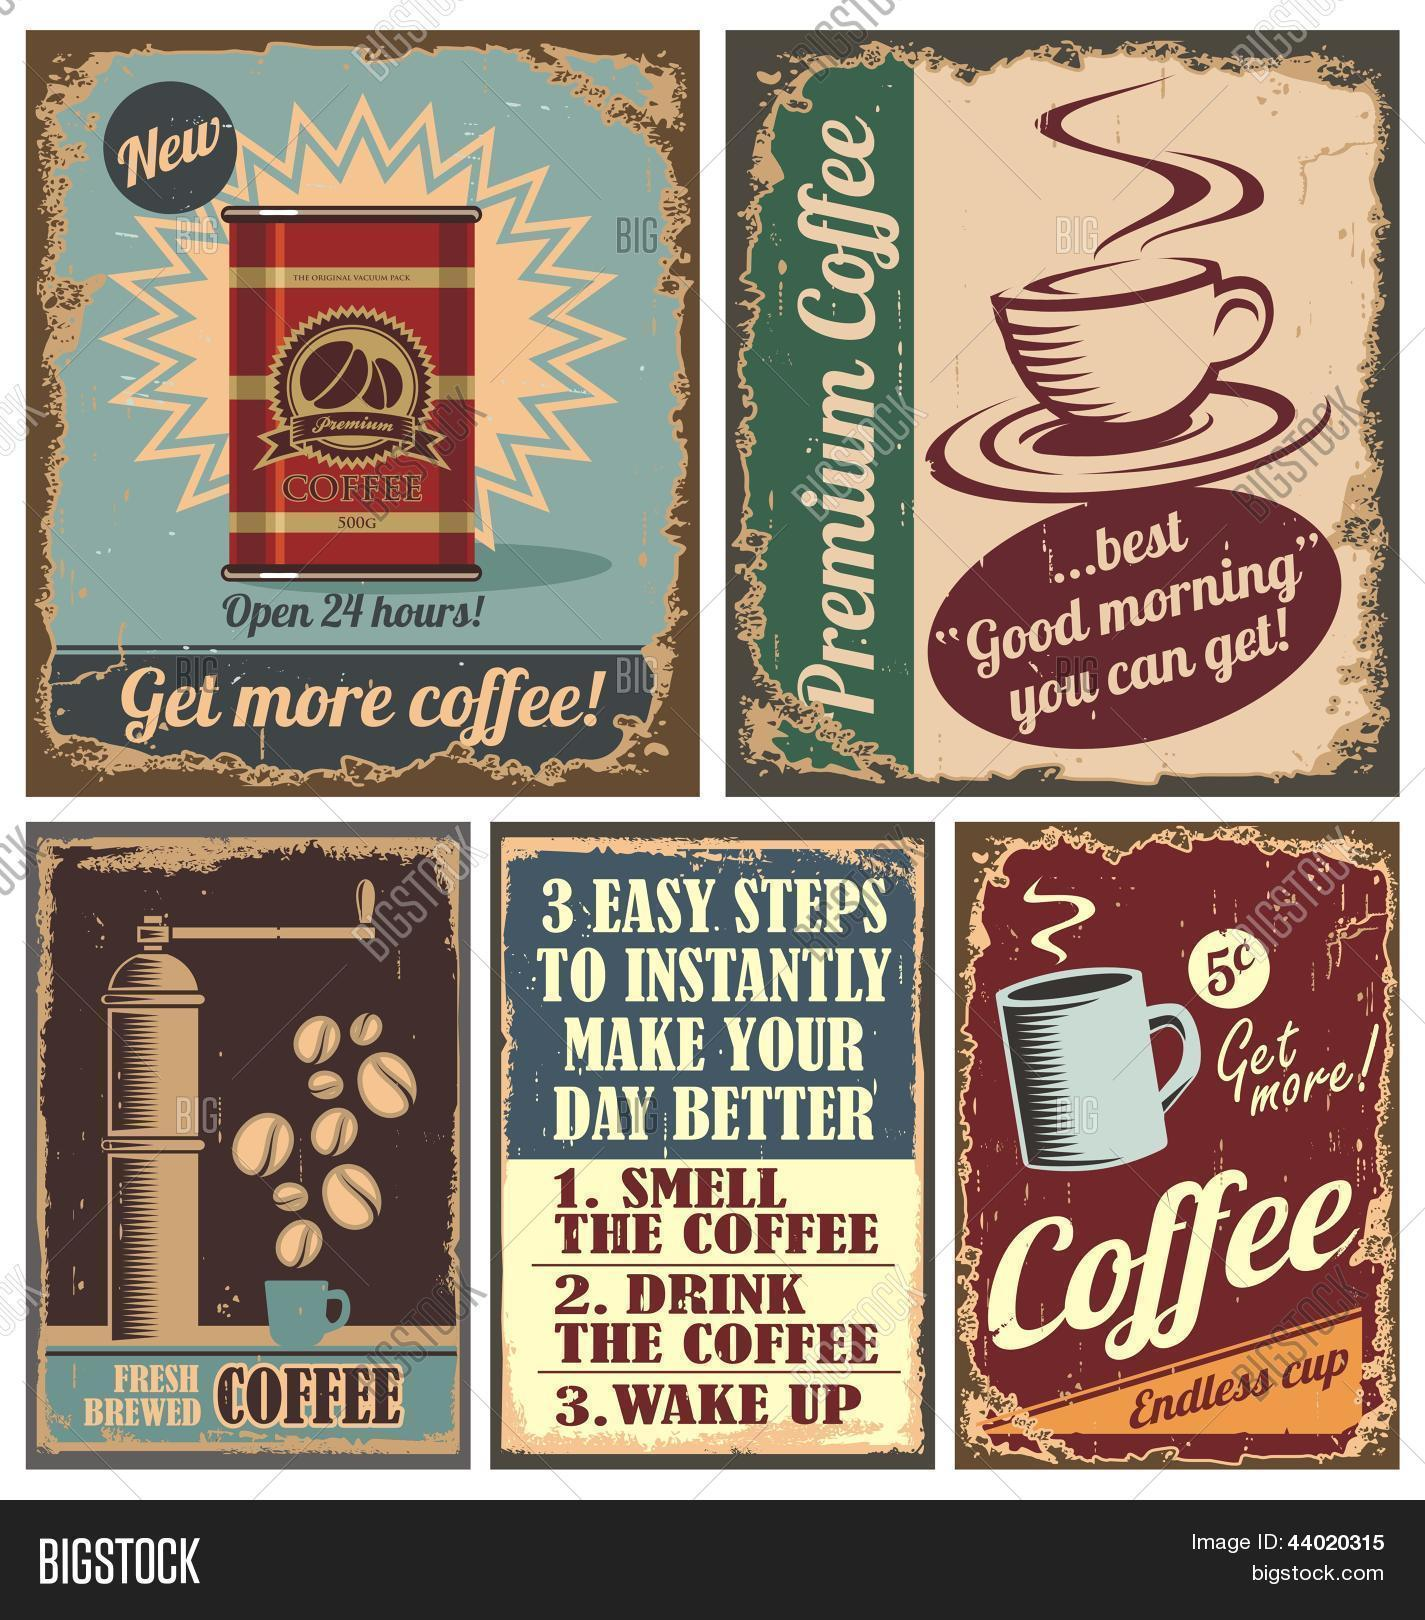 Coffee Posters Retro ~ Vintage coffee posters metal signs vector photo bigstock